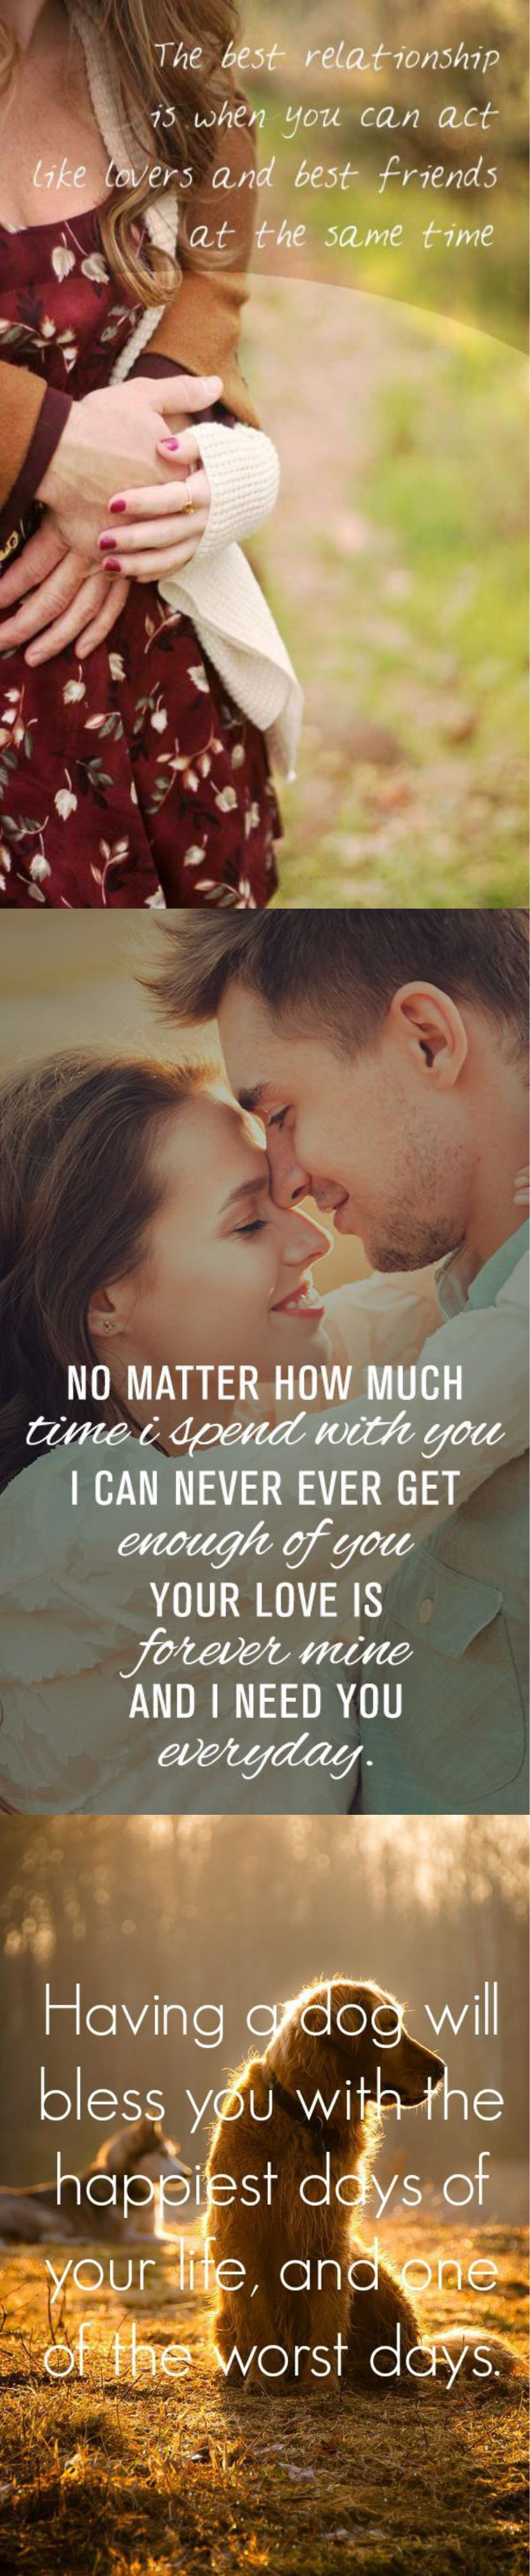 Best quotes on love with images 2017